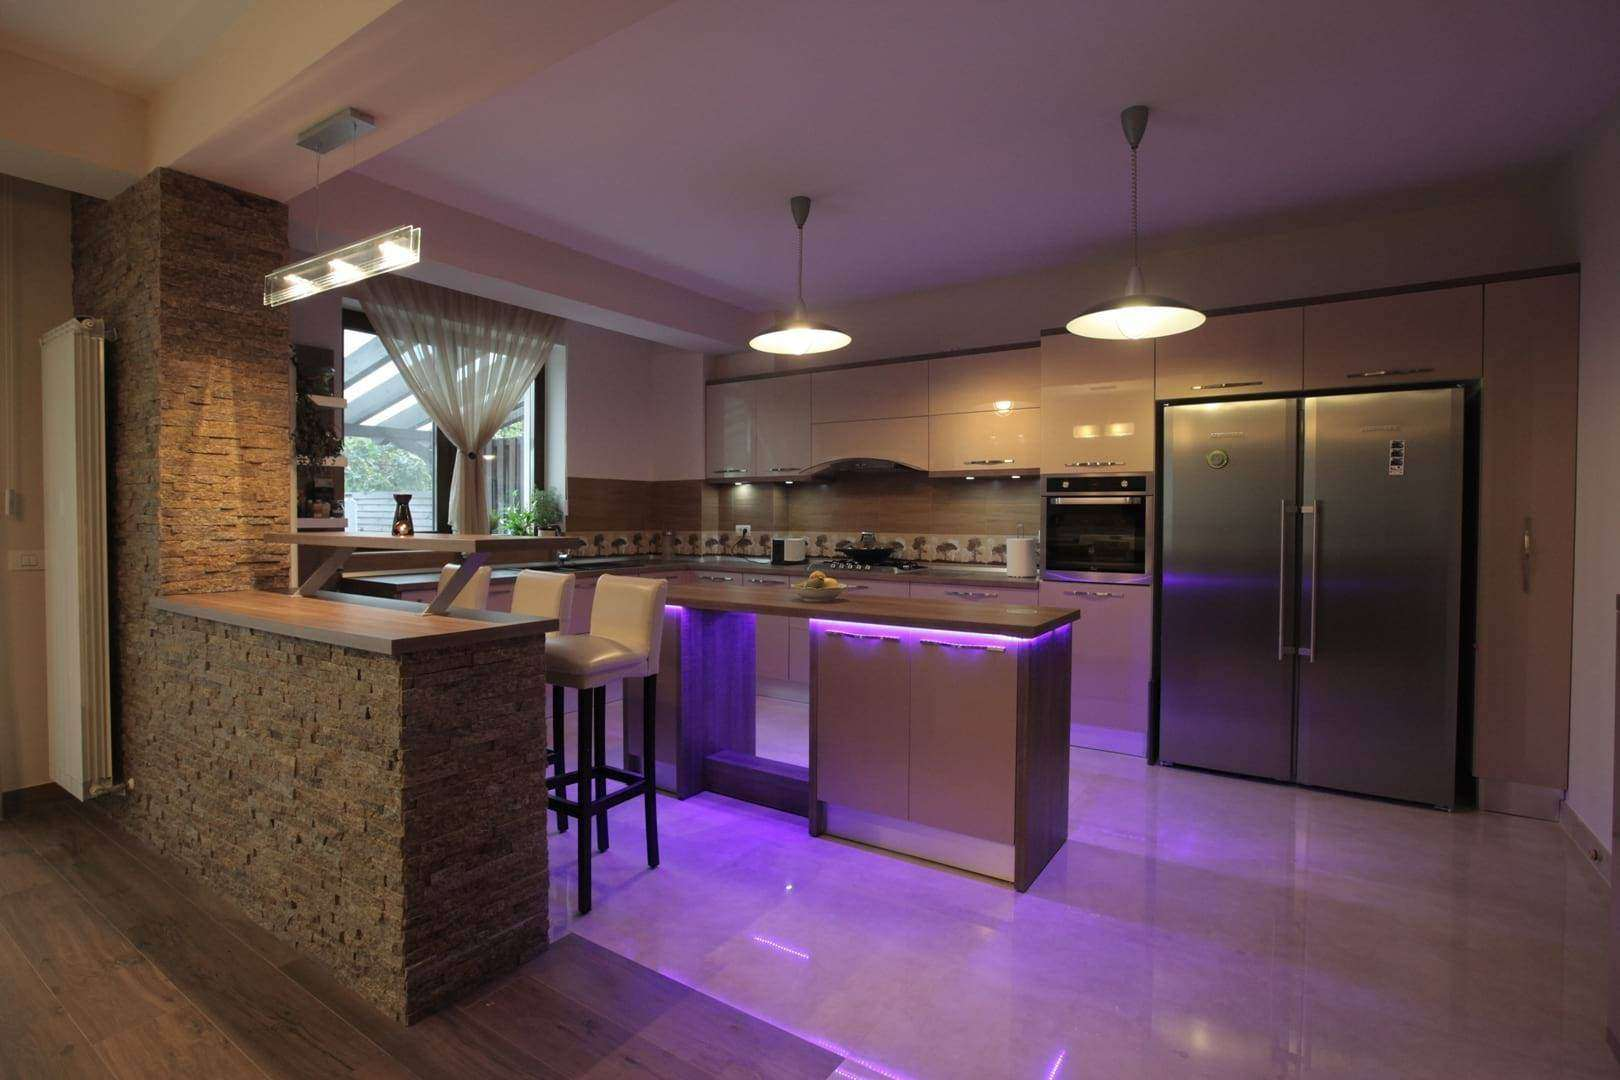 <a href=&quot;Sisitem de lumini RGB instalat in bucataria Aime - mobila bucatarie open space cu dining integrat&quot;>Sistem de lumini RGB instalat in bucataria Aime - mobila bucatarie open space cu dining integrat <img src='http://www.unican.ro/wp-content/themes/vita/img/dreapta.png' class='pull-right hidden-xs' style='margin-right:-10px;margin-top:-10px; max-height:41px'></a>